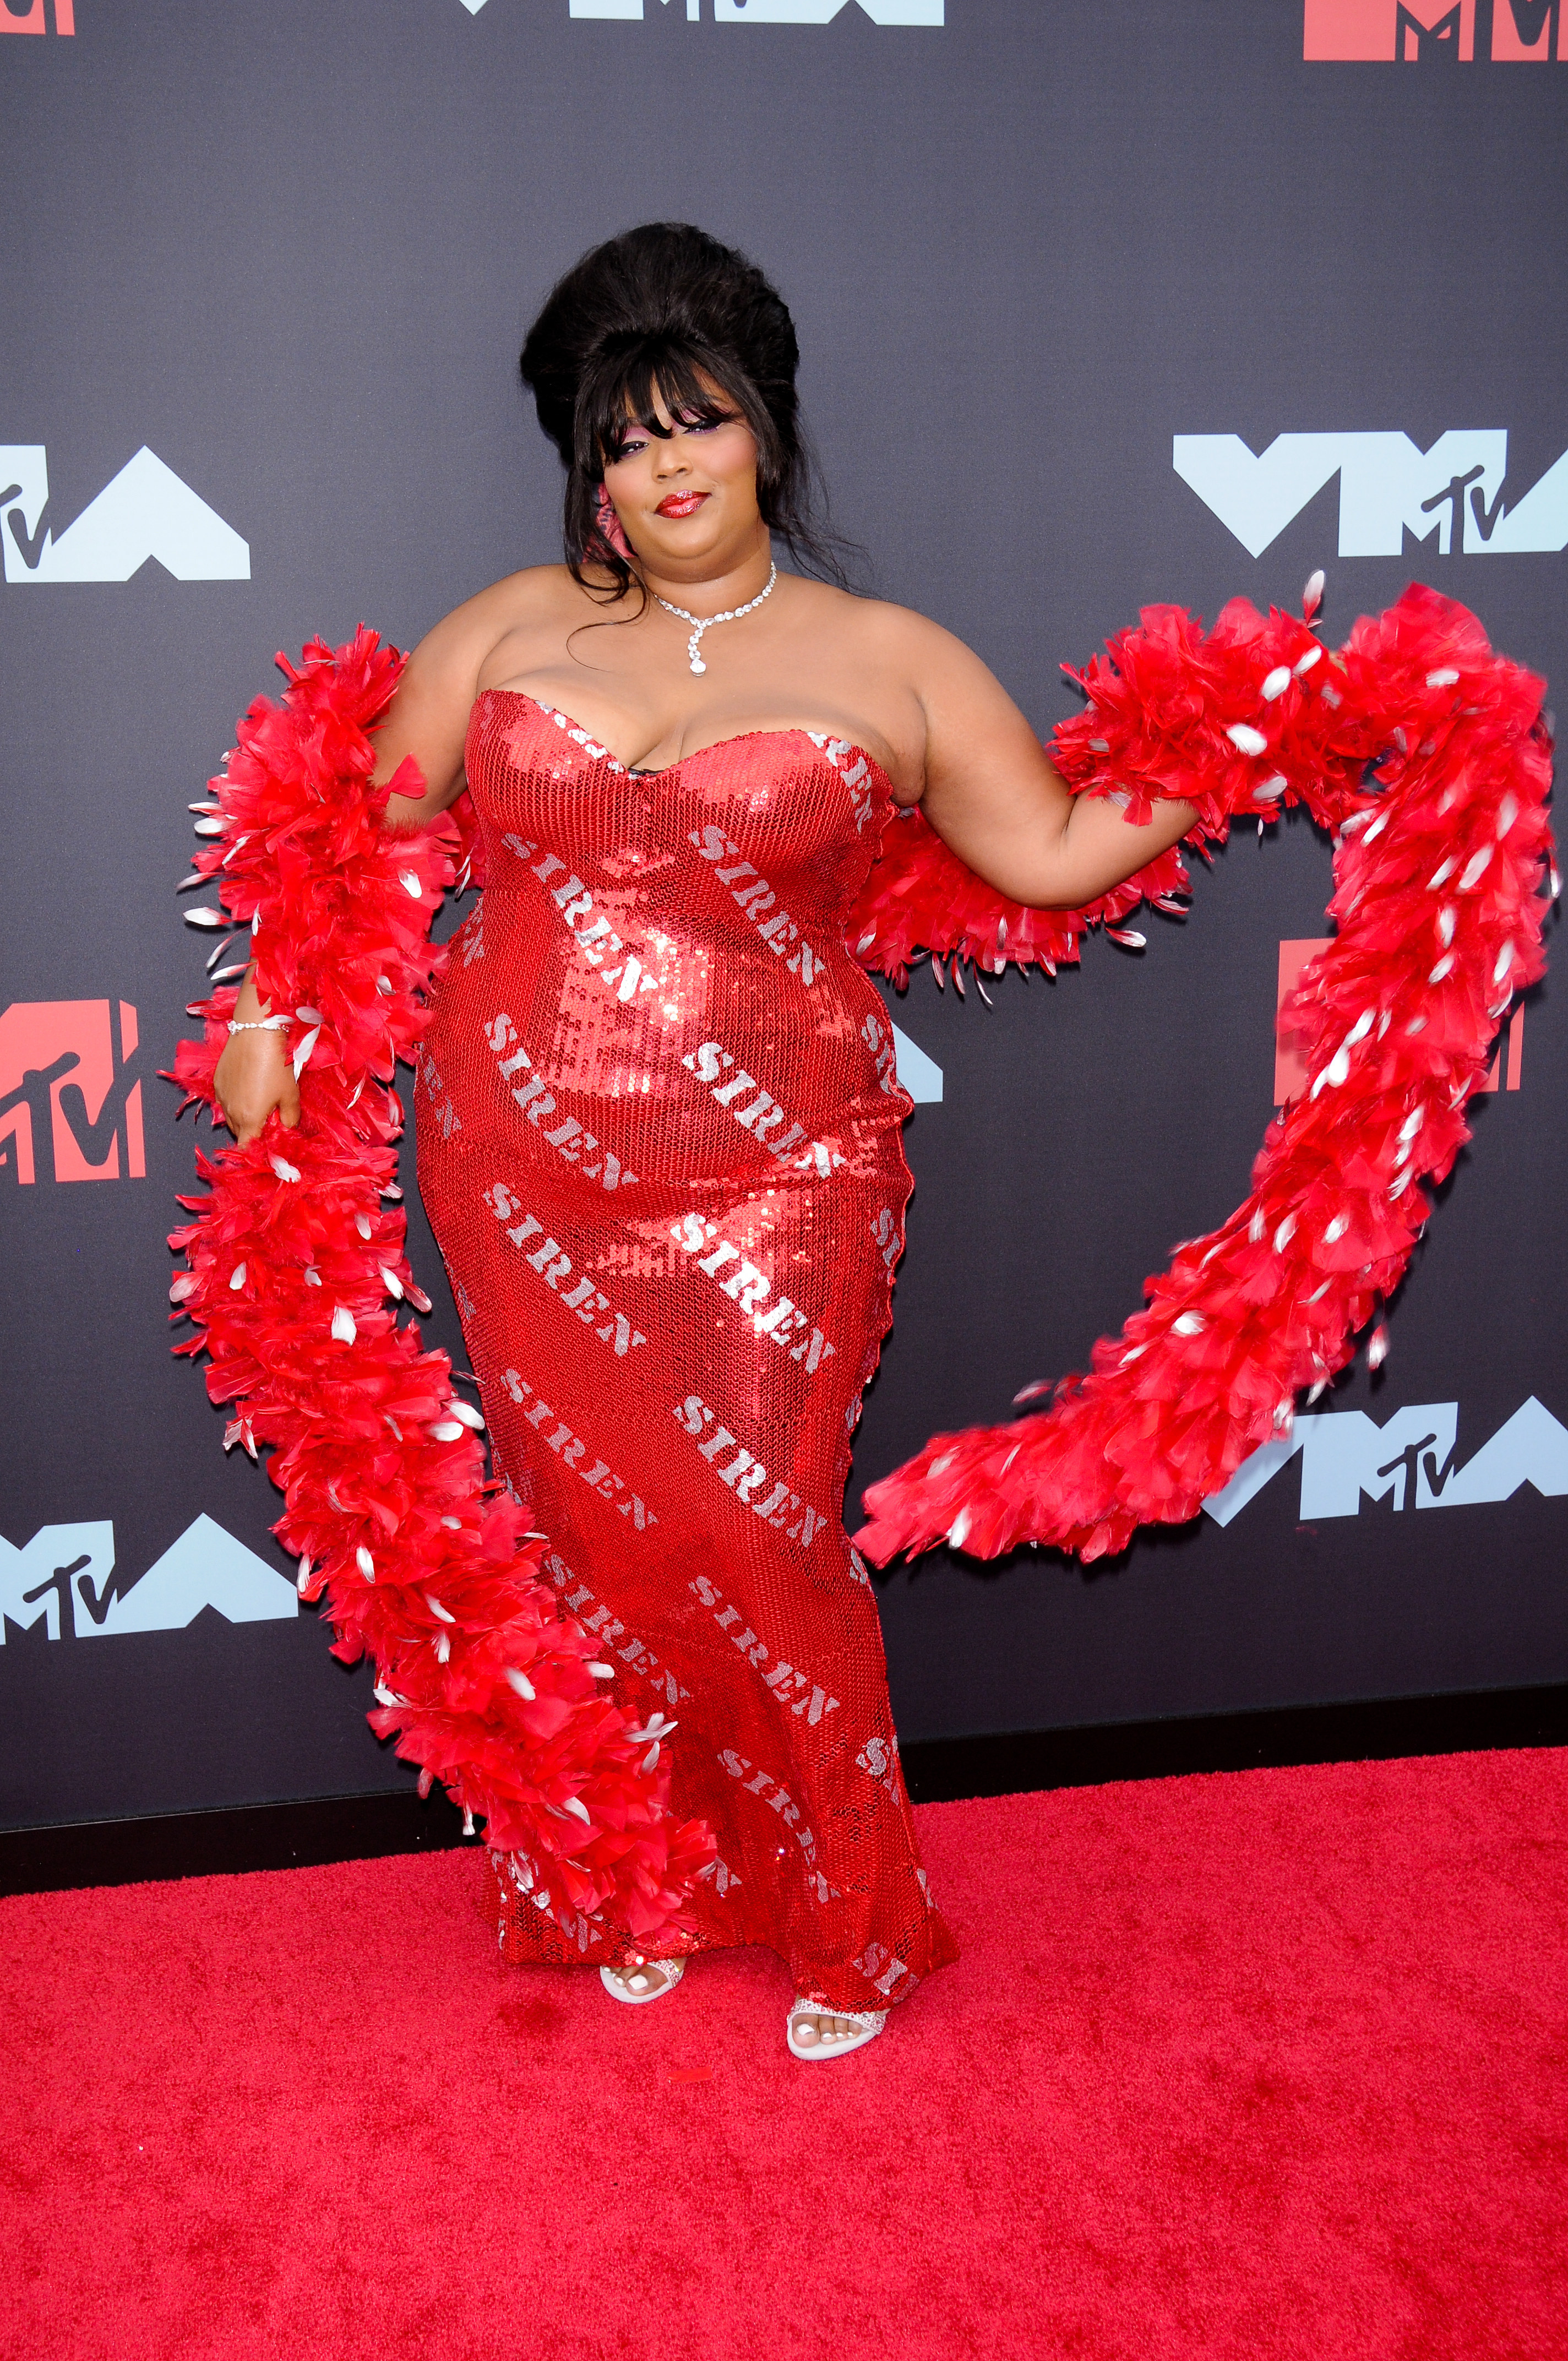 Lizzo at the Video Music Awards in 2019